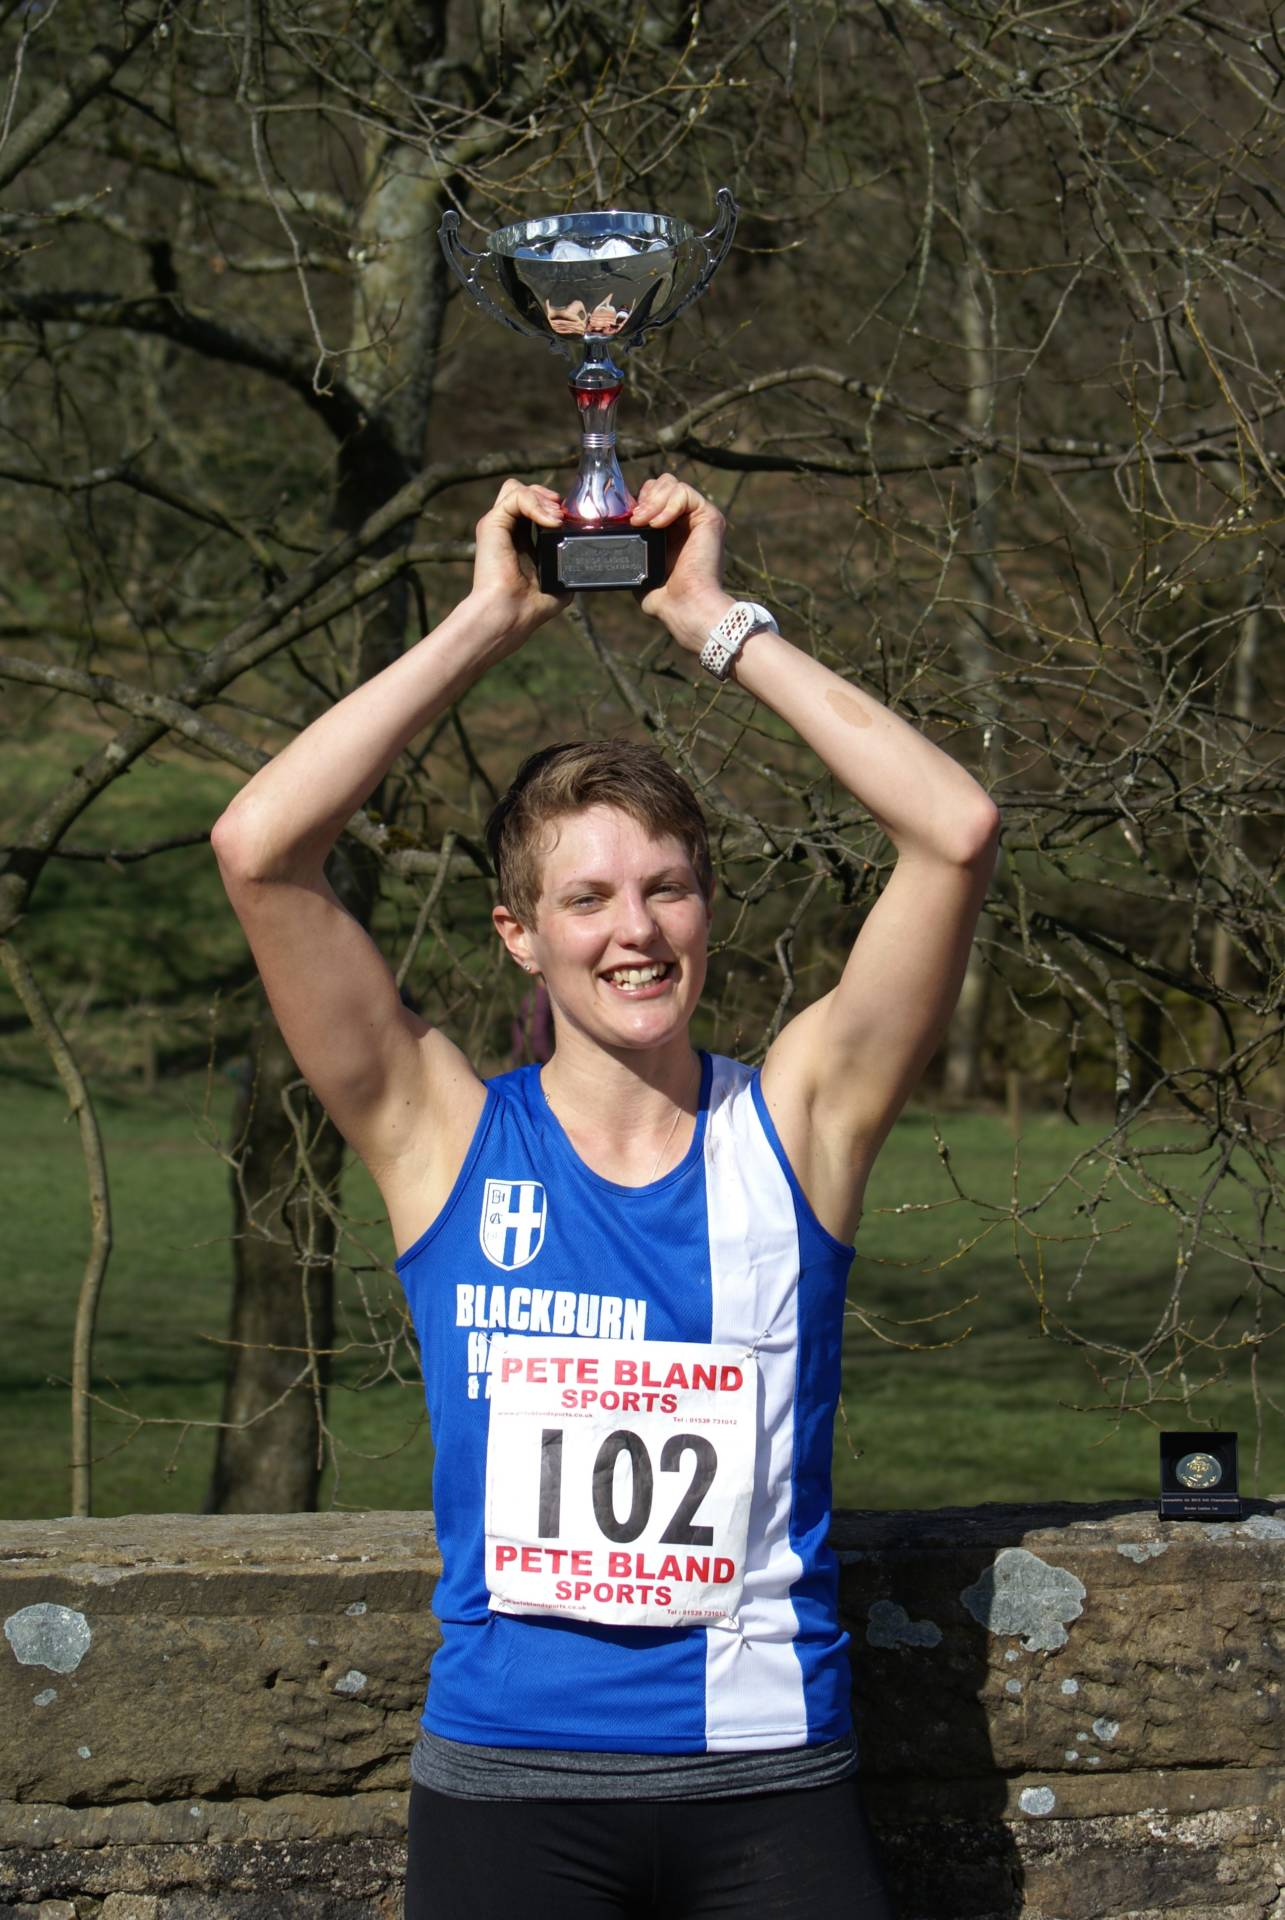 Five Lancashire Titles for the Harriers at Pendle – Rivington Pike Race & Good Friday Salford 10k